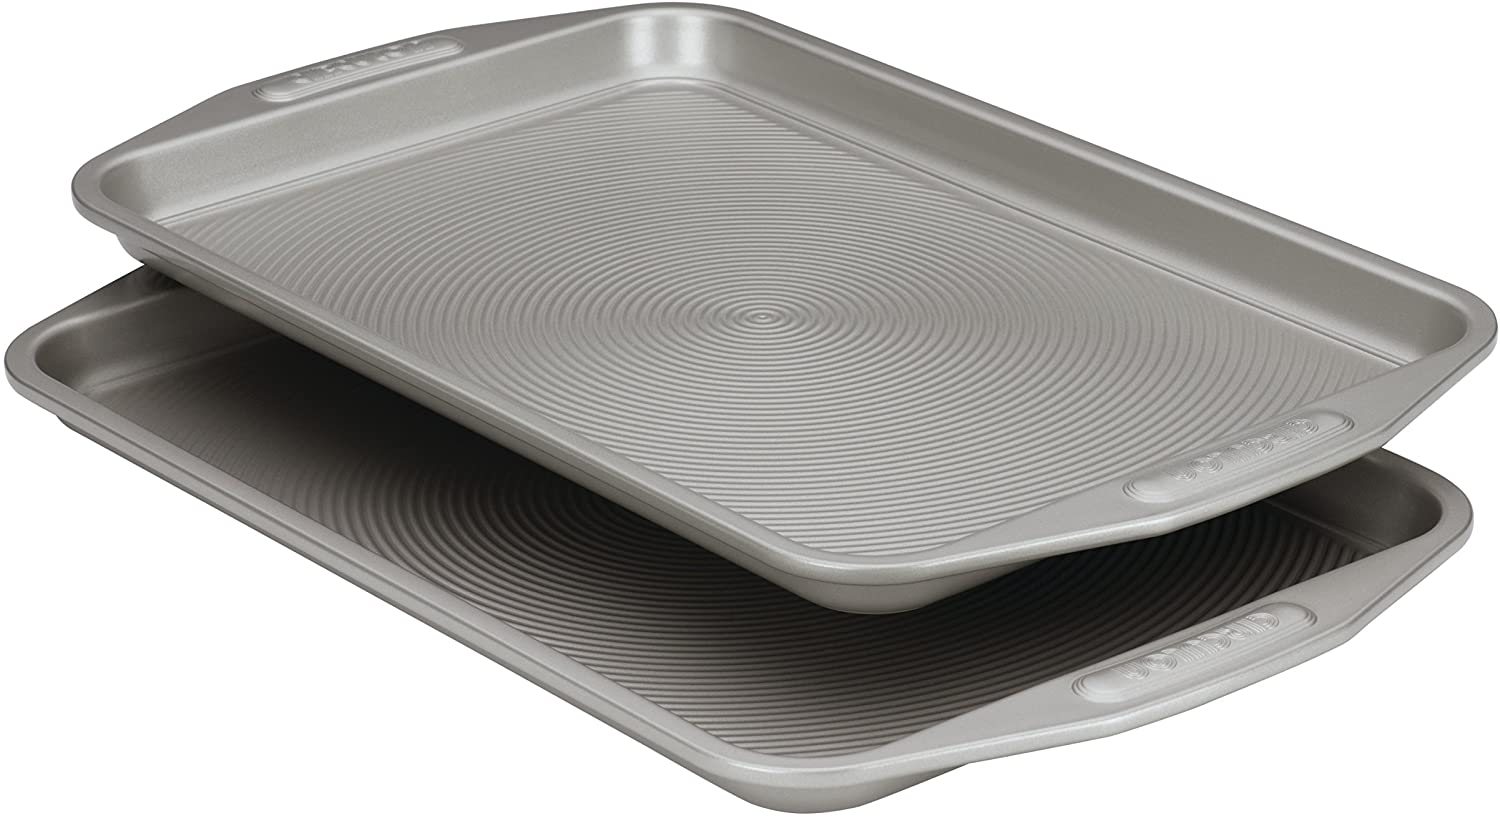 Circulon Total Bakeware Set Nonstick Cookie Baking Sheets, 2 Piece, Gray: Jelly Roll Pans: Kitchen & Dining